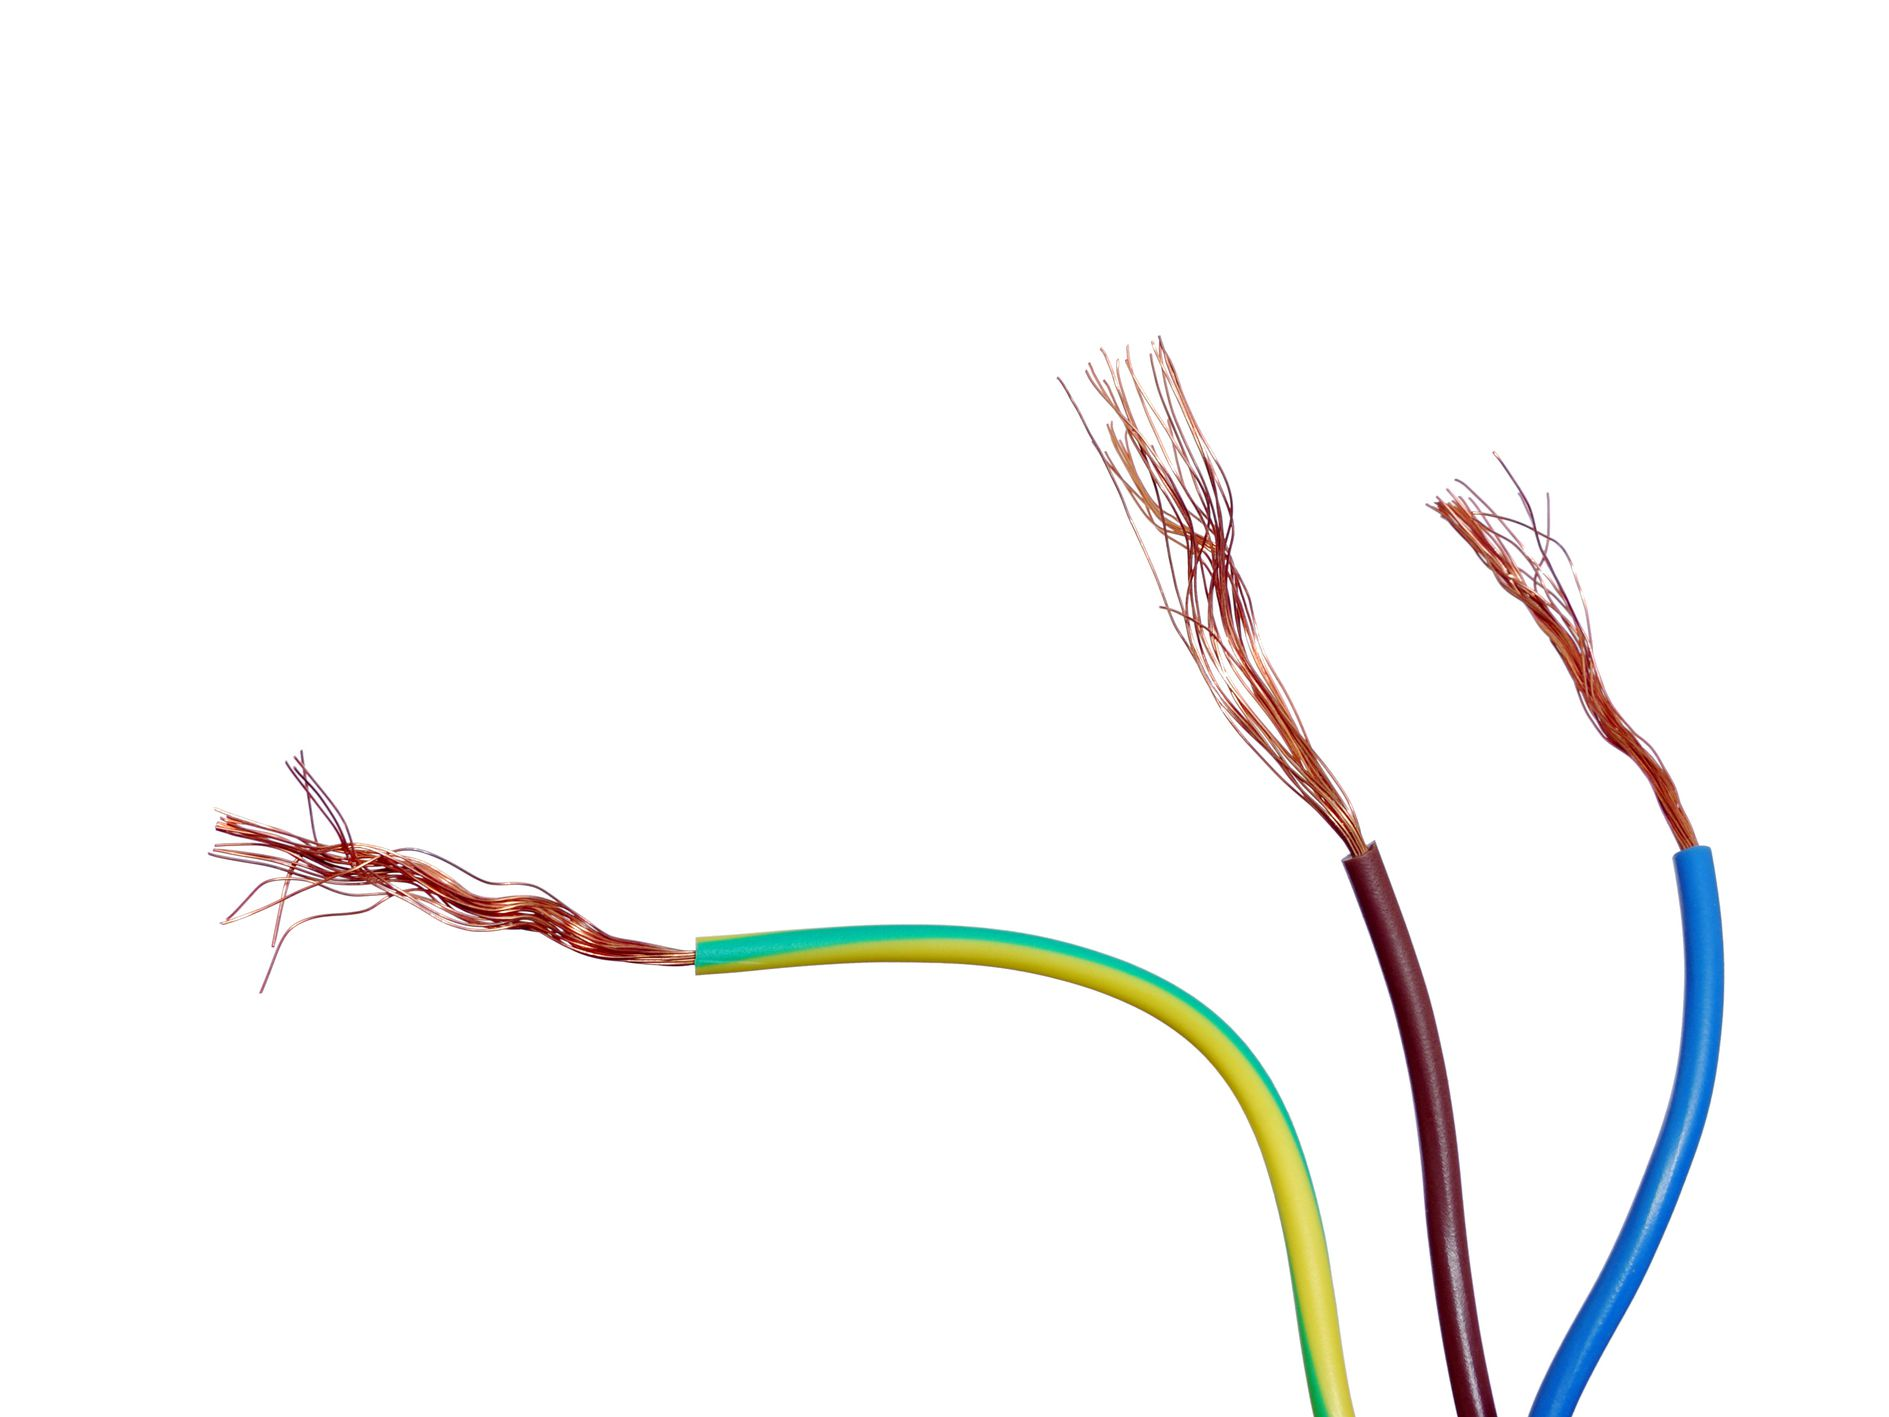 hight resolution of how to splice wires for speakers and home theater systems